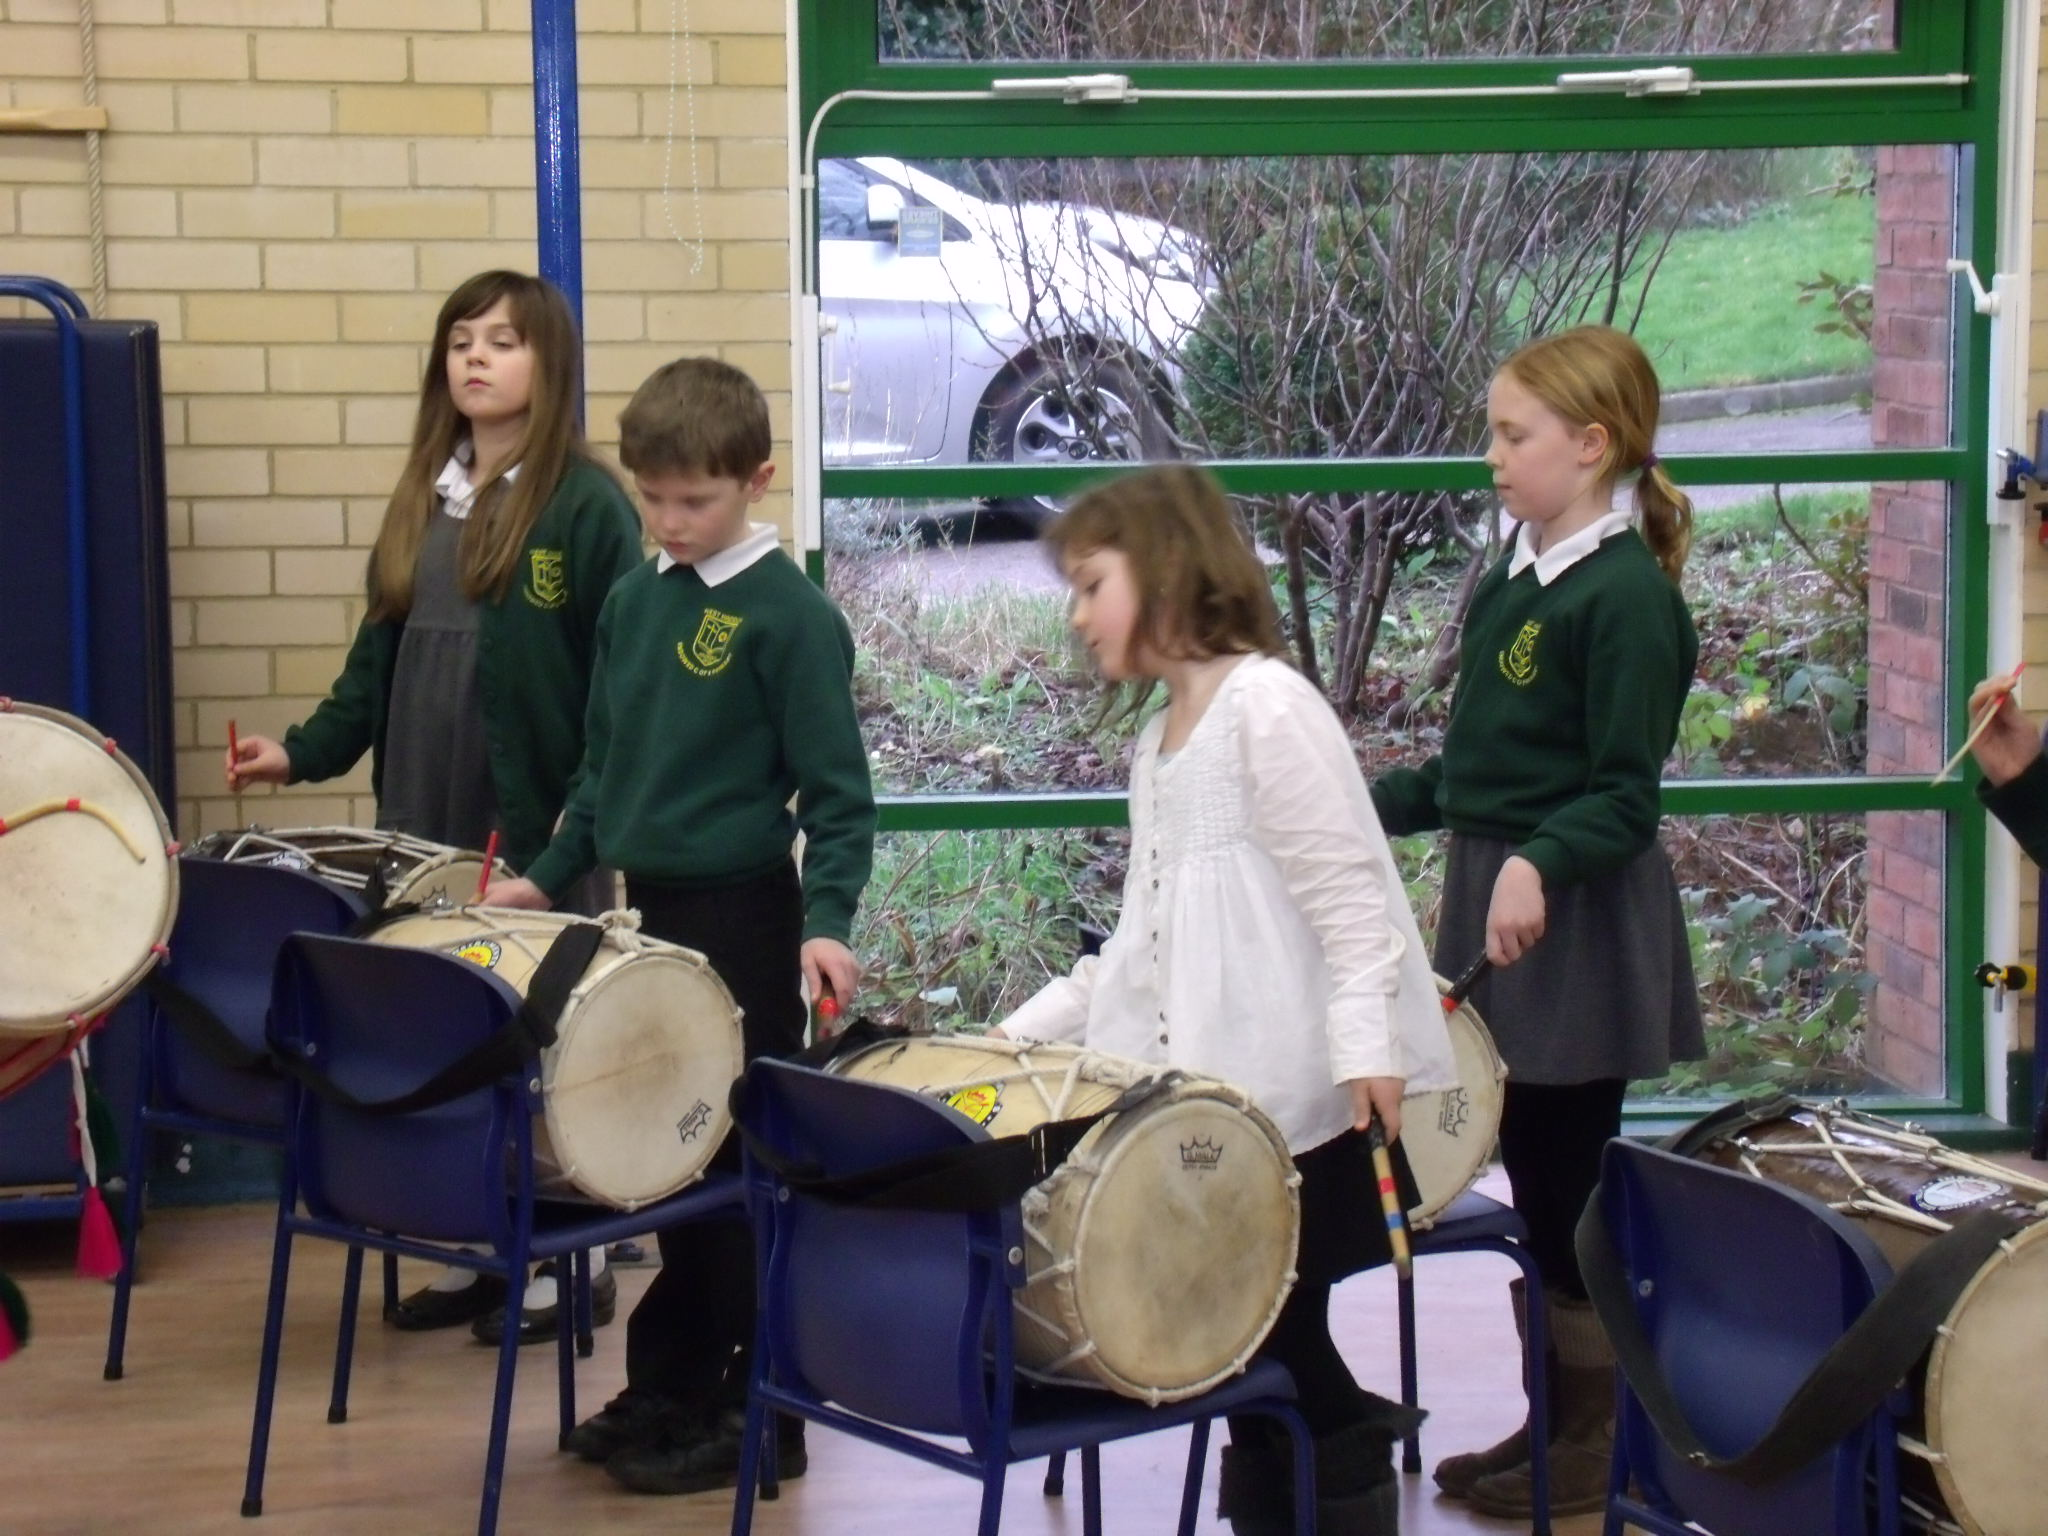 School children playing Indian drums in school hall on chairs